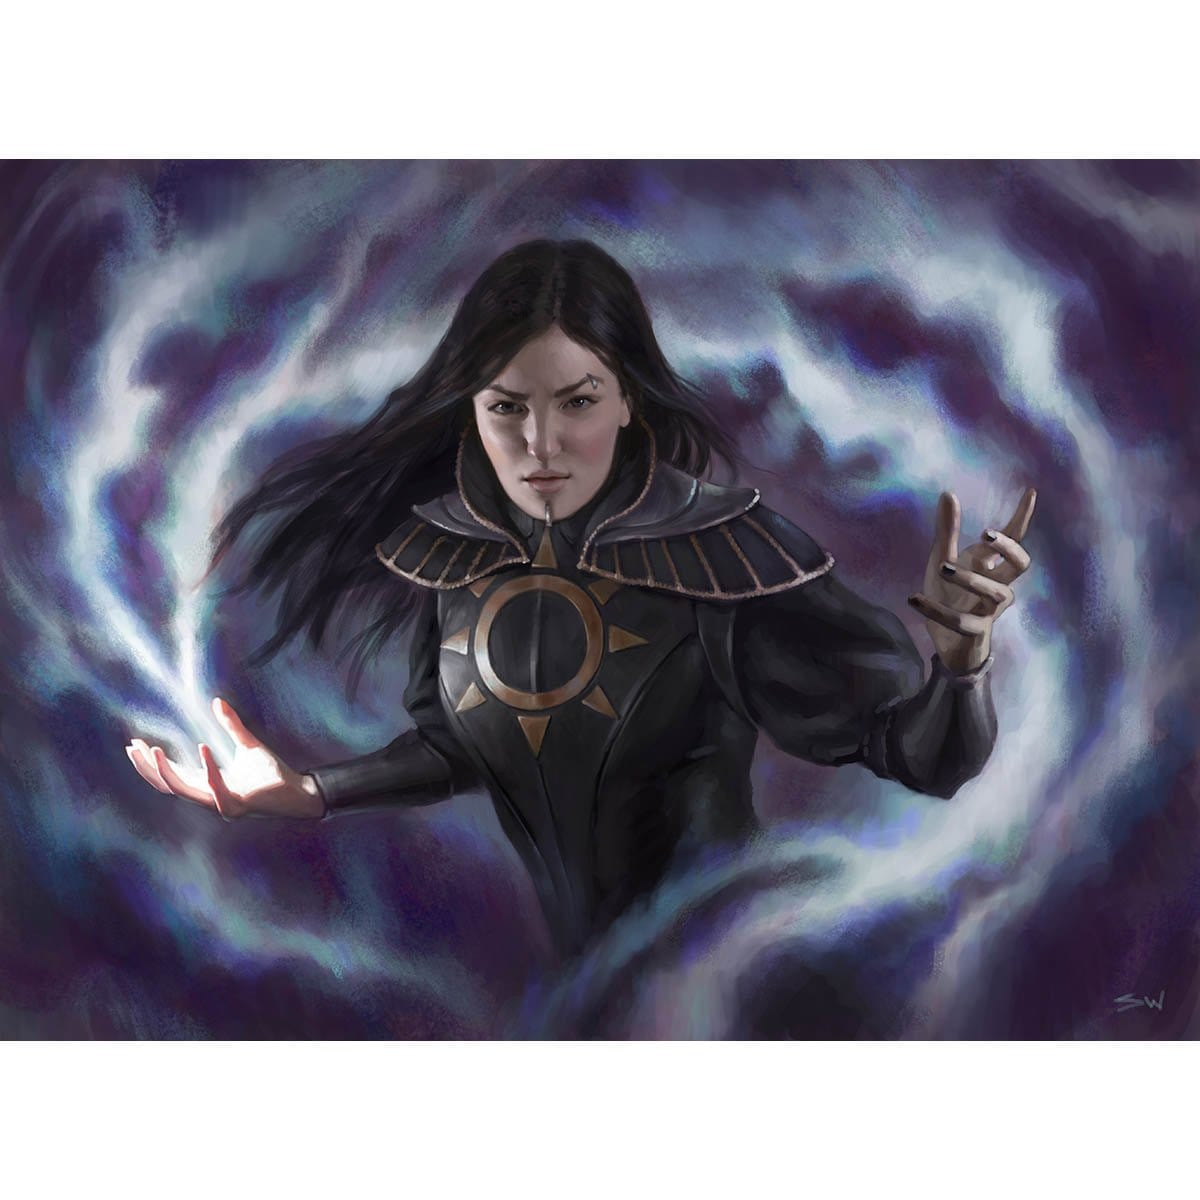 Teysa, Orzhov Scion Print - Print - Original Magic Art - Accessories for Magic the Gathering and other card games